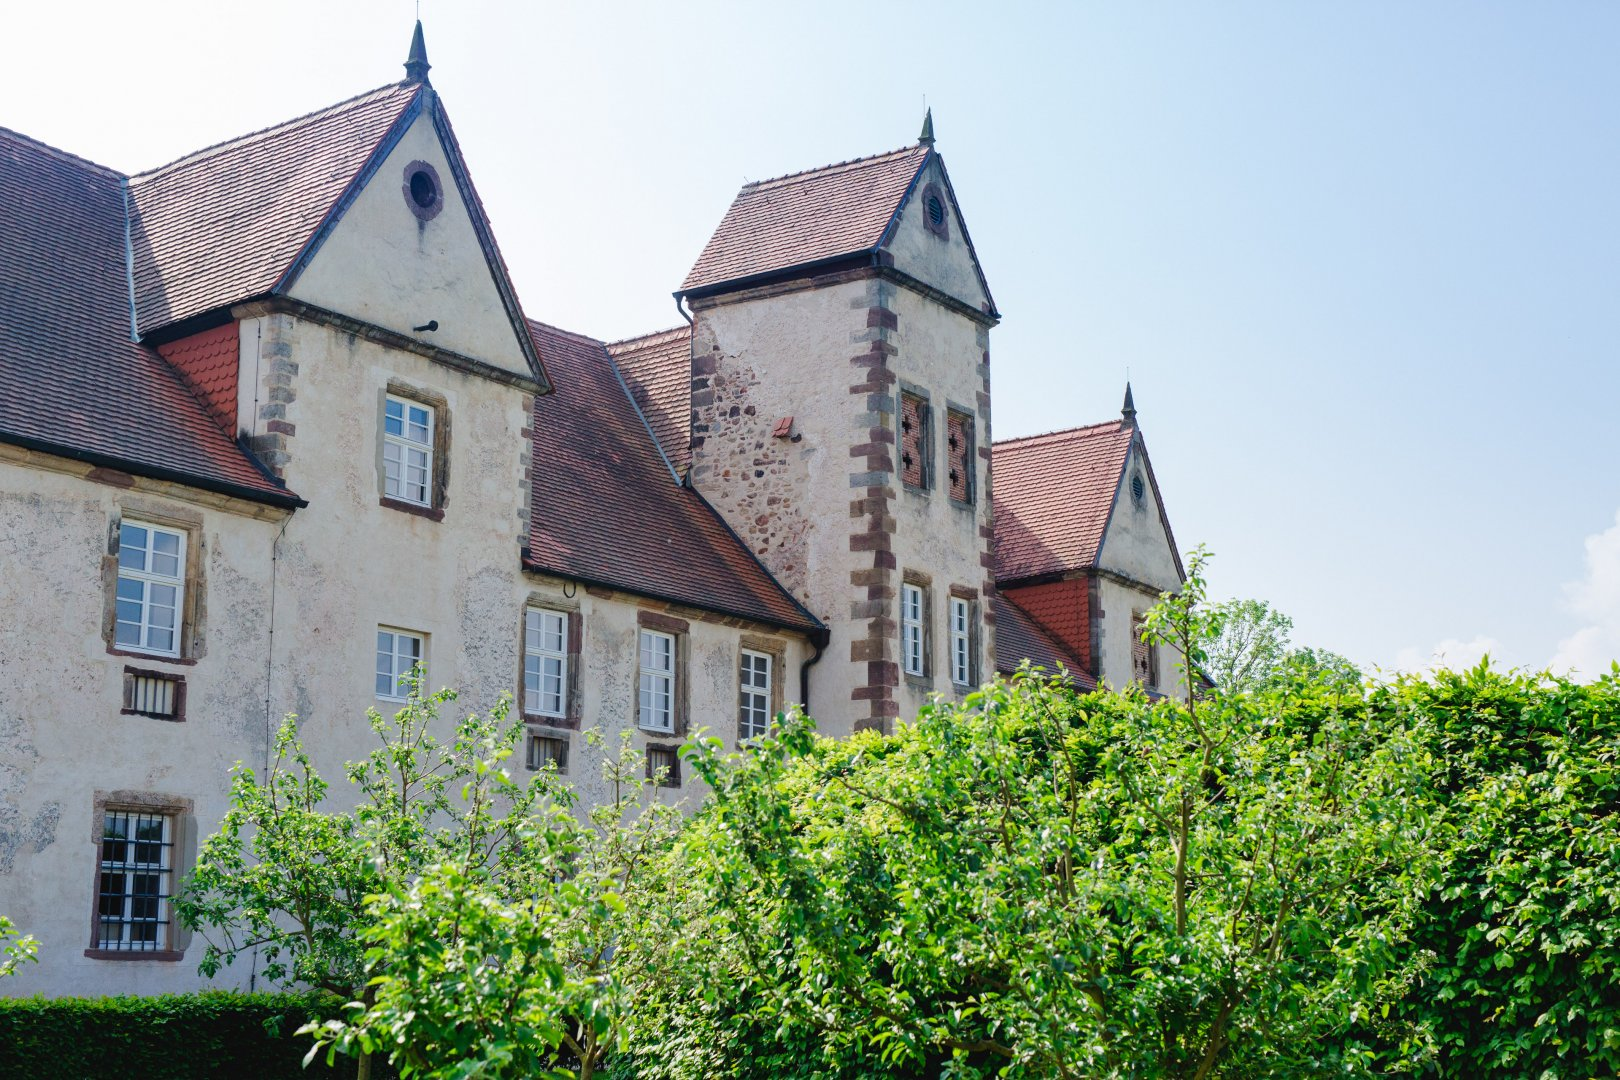 Property House Architecture Building Château Home Estate Roof Real estate Manor house Cottage Grass Tree Residential area Farmhouse Plant Medieval architecture Historic house Almshouse Facade Mansion Village Villa Church Shrub